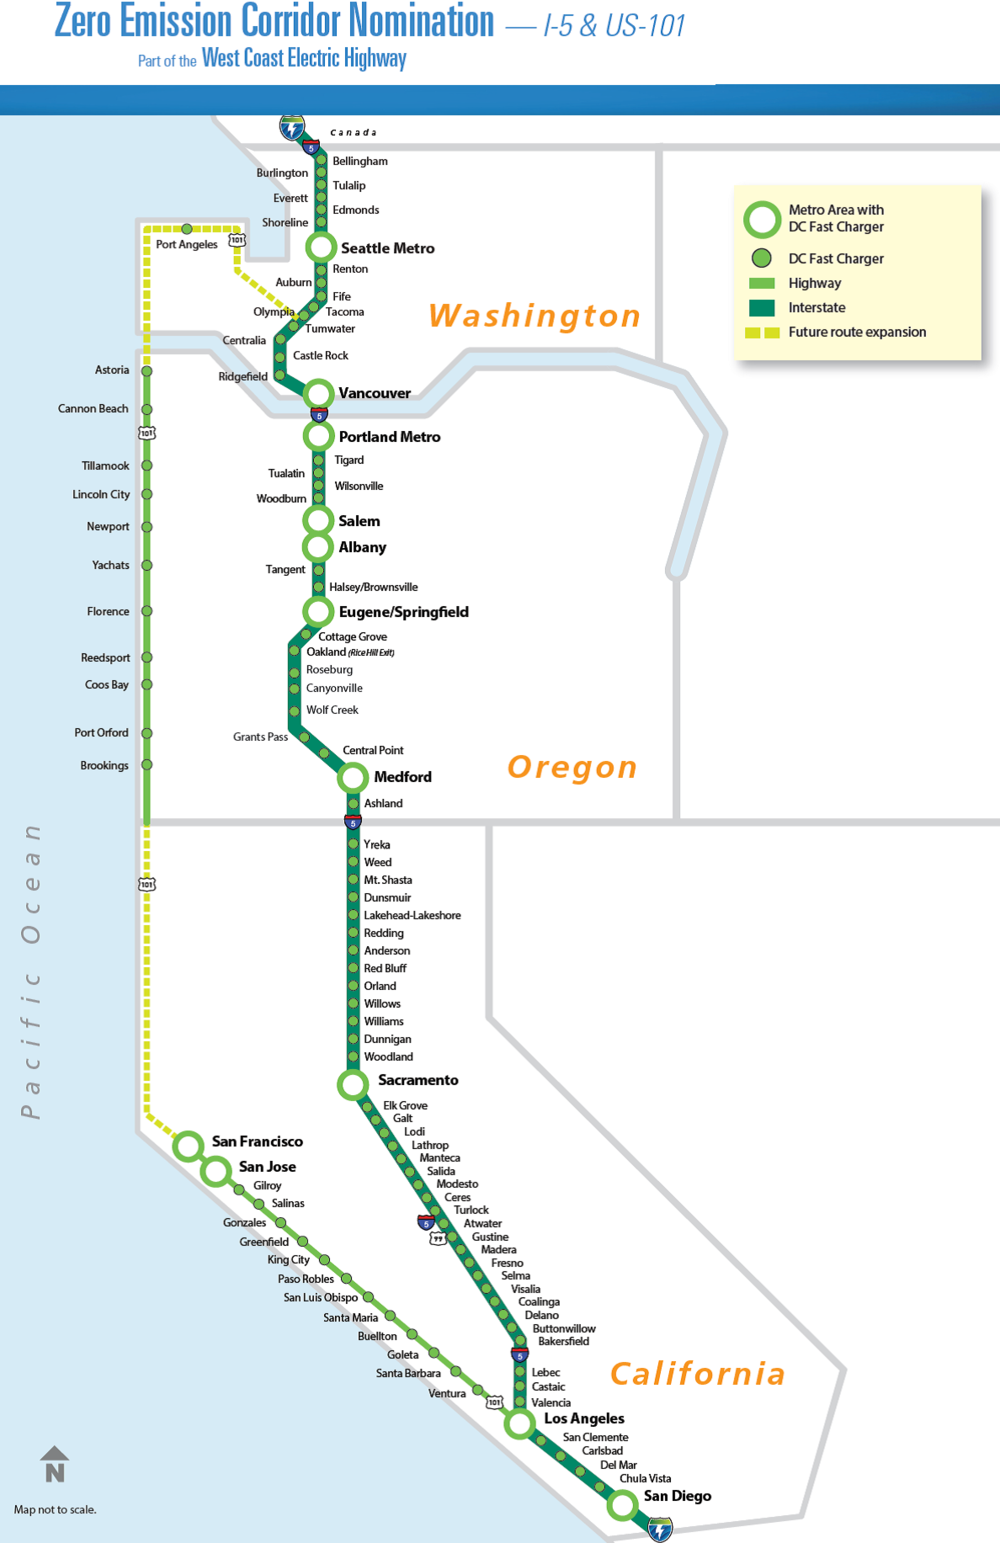 Potential sites for truck fast-charging stations along I-5 and state highways. (Source: WCCT)